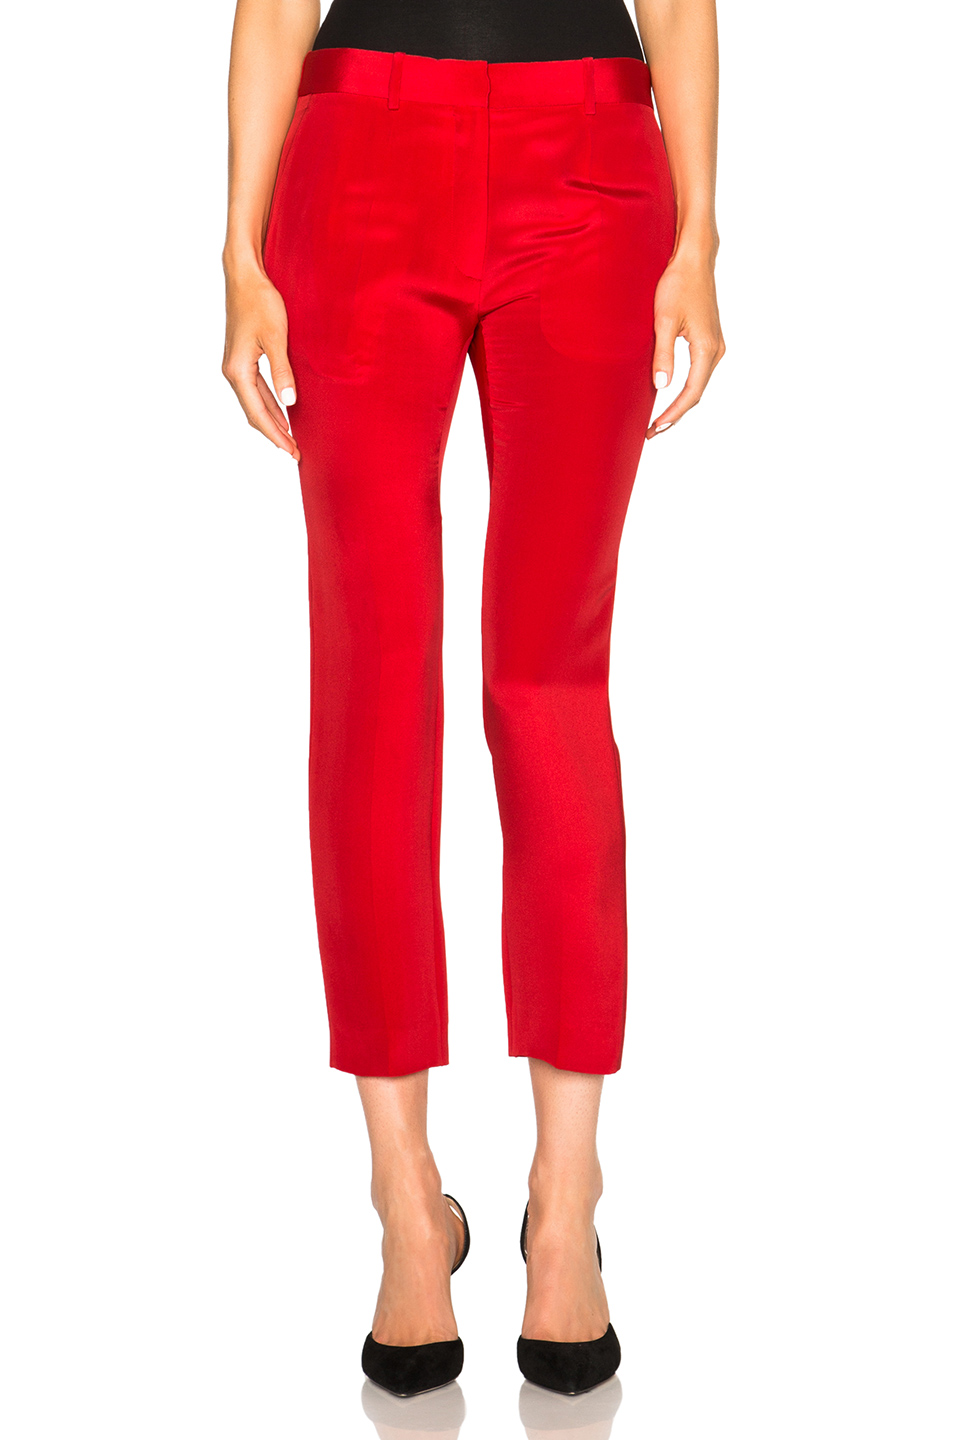 Victoria Beckham Crepe Moroccan Slim Trousers in Red